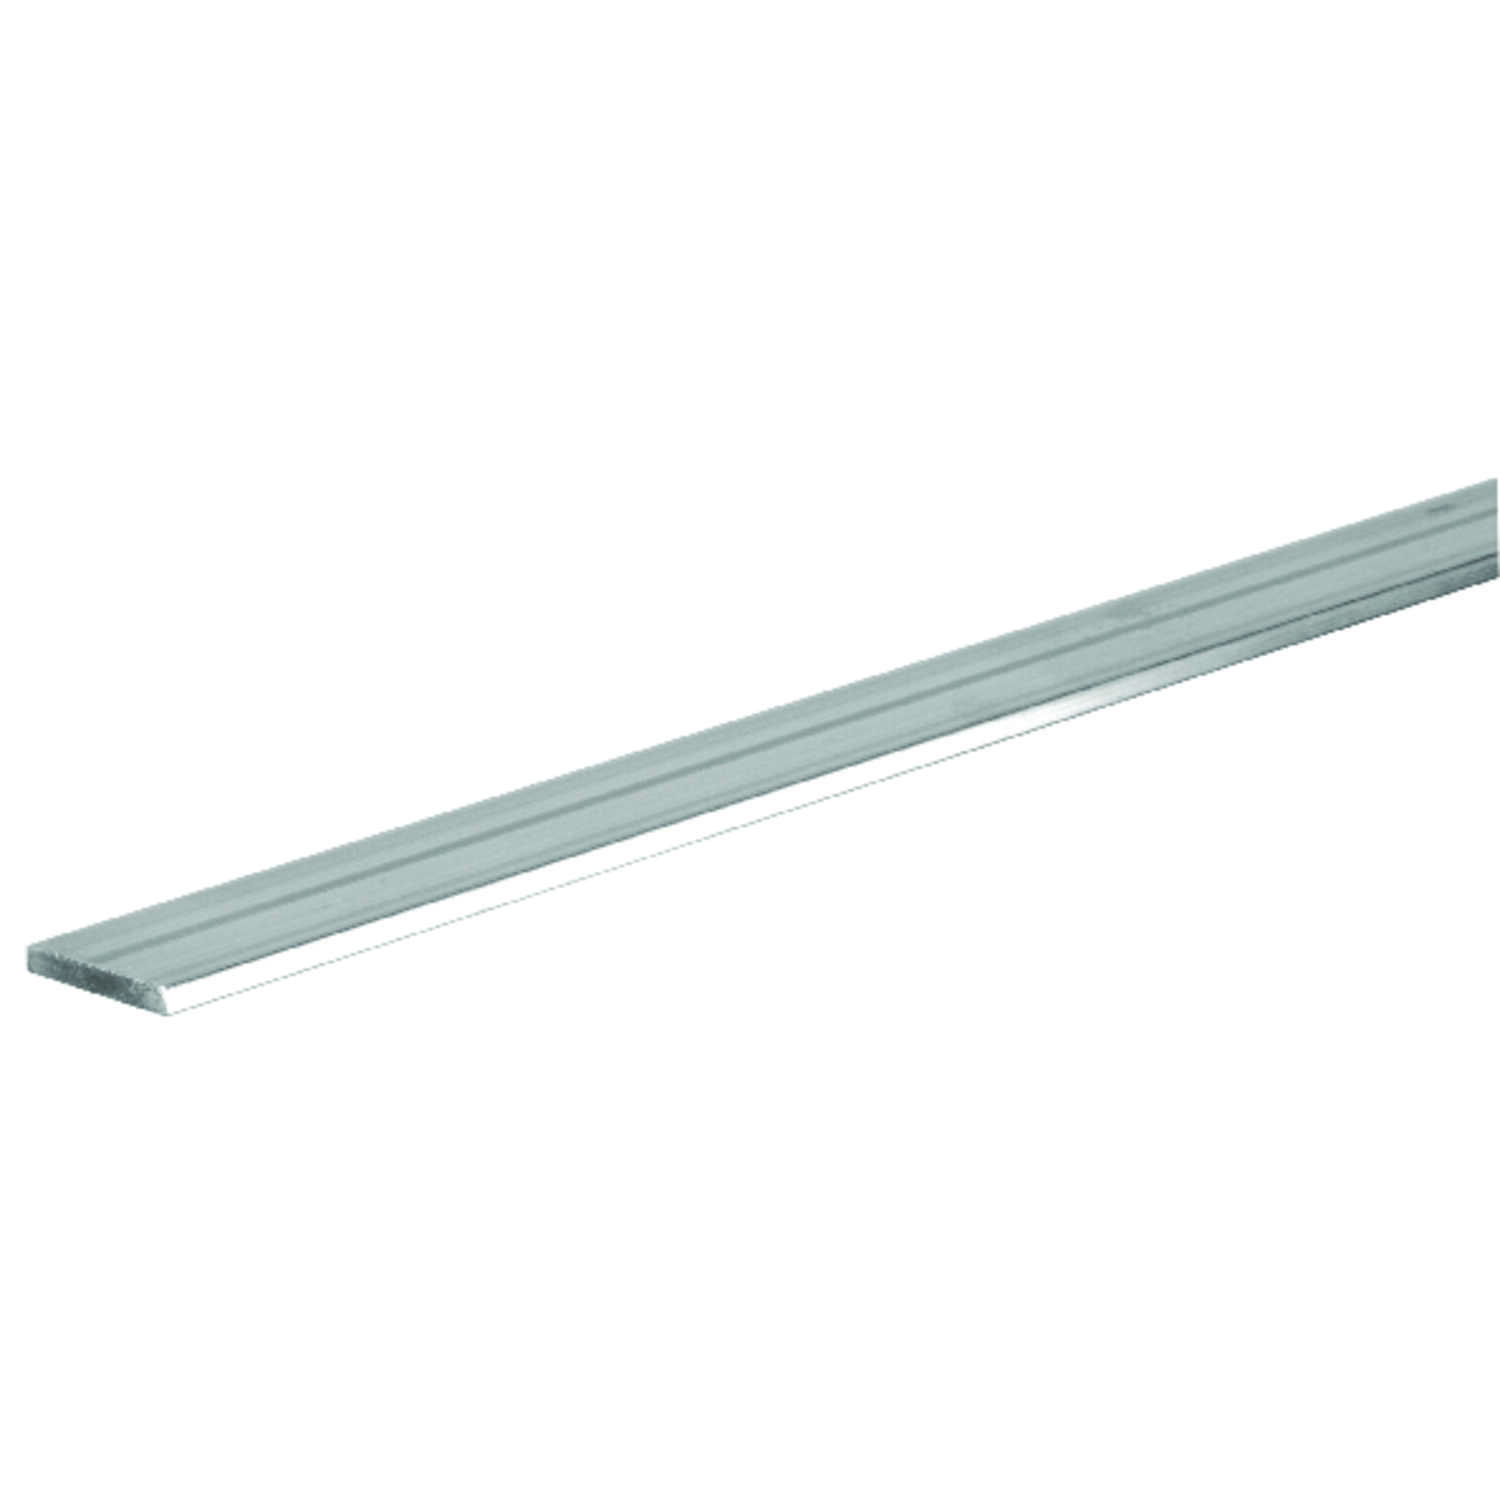 Boltmaster  0.125 in.  x 0.75 in. W x 6 ft. L Weldable Aluminum Flat Bar  5 pk